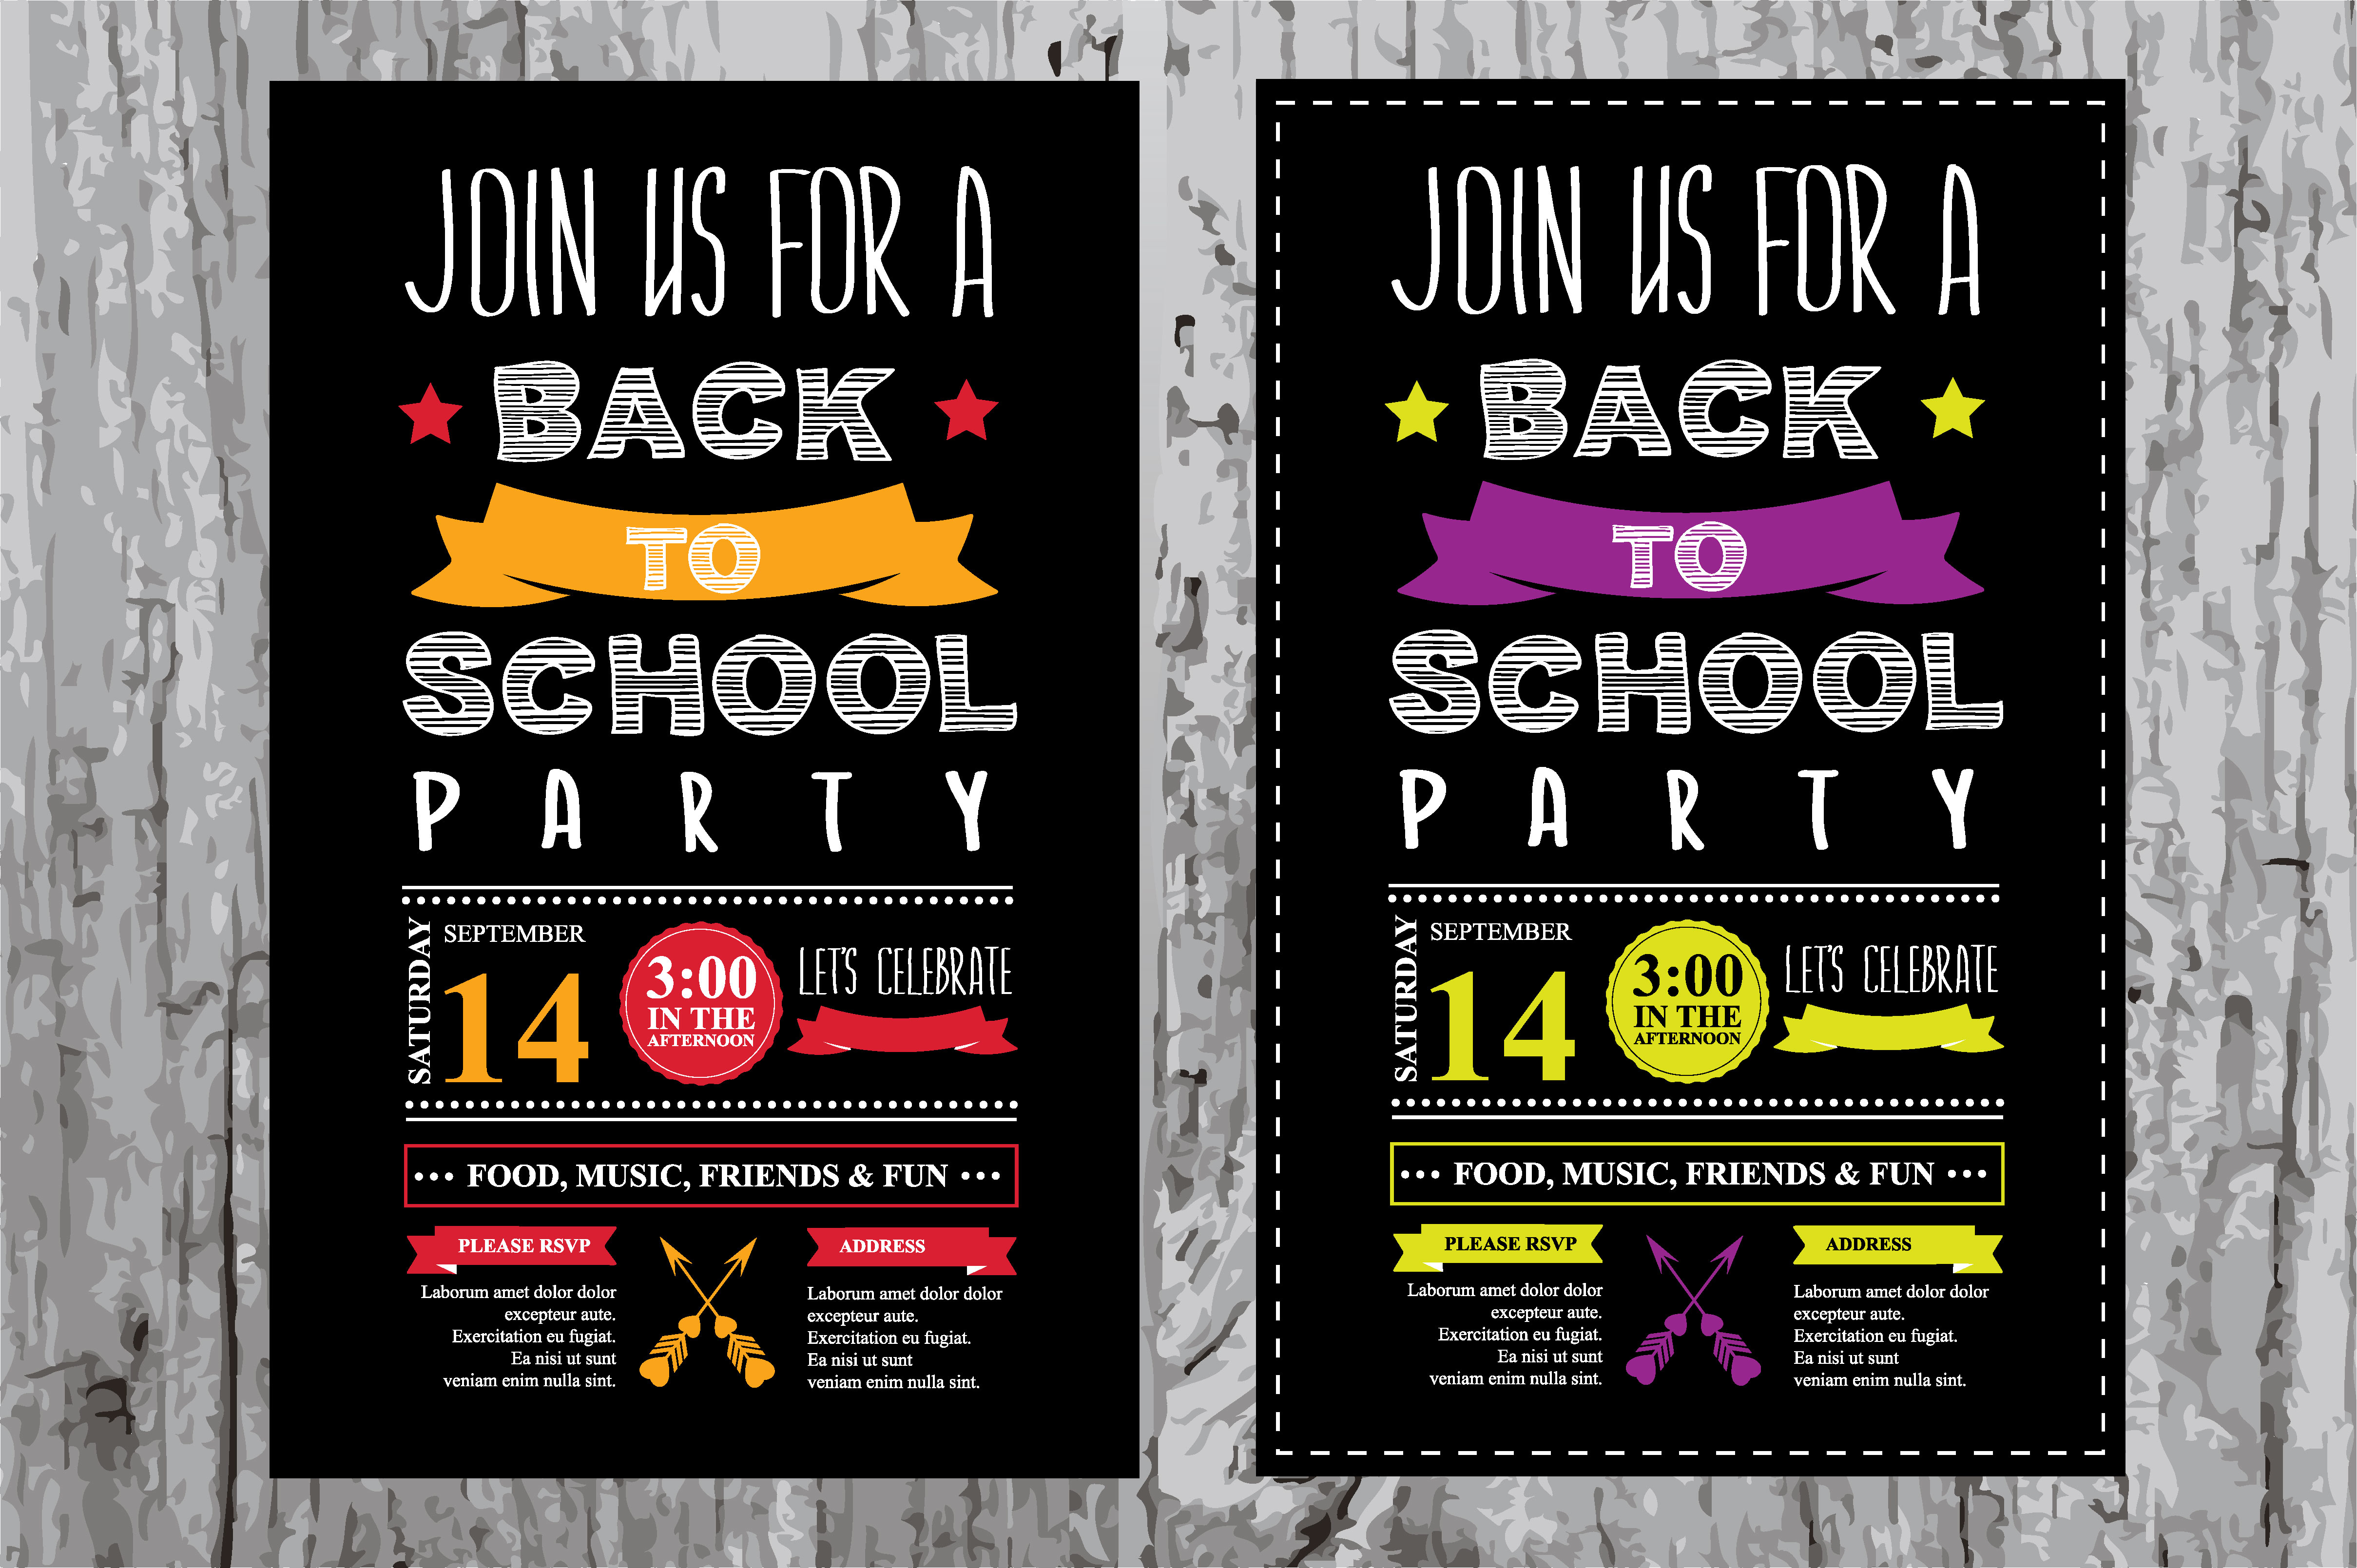 back to school party invitation invitation templates on creative market. Black Bedroom Furniture Sets. Home Design Ideas